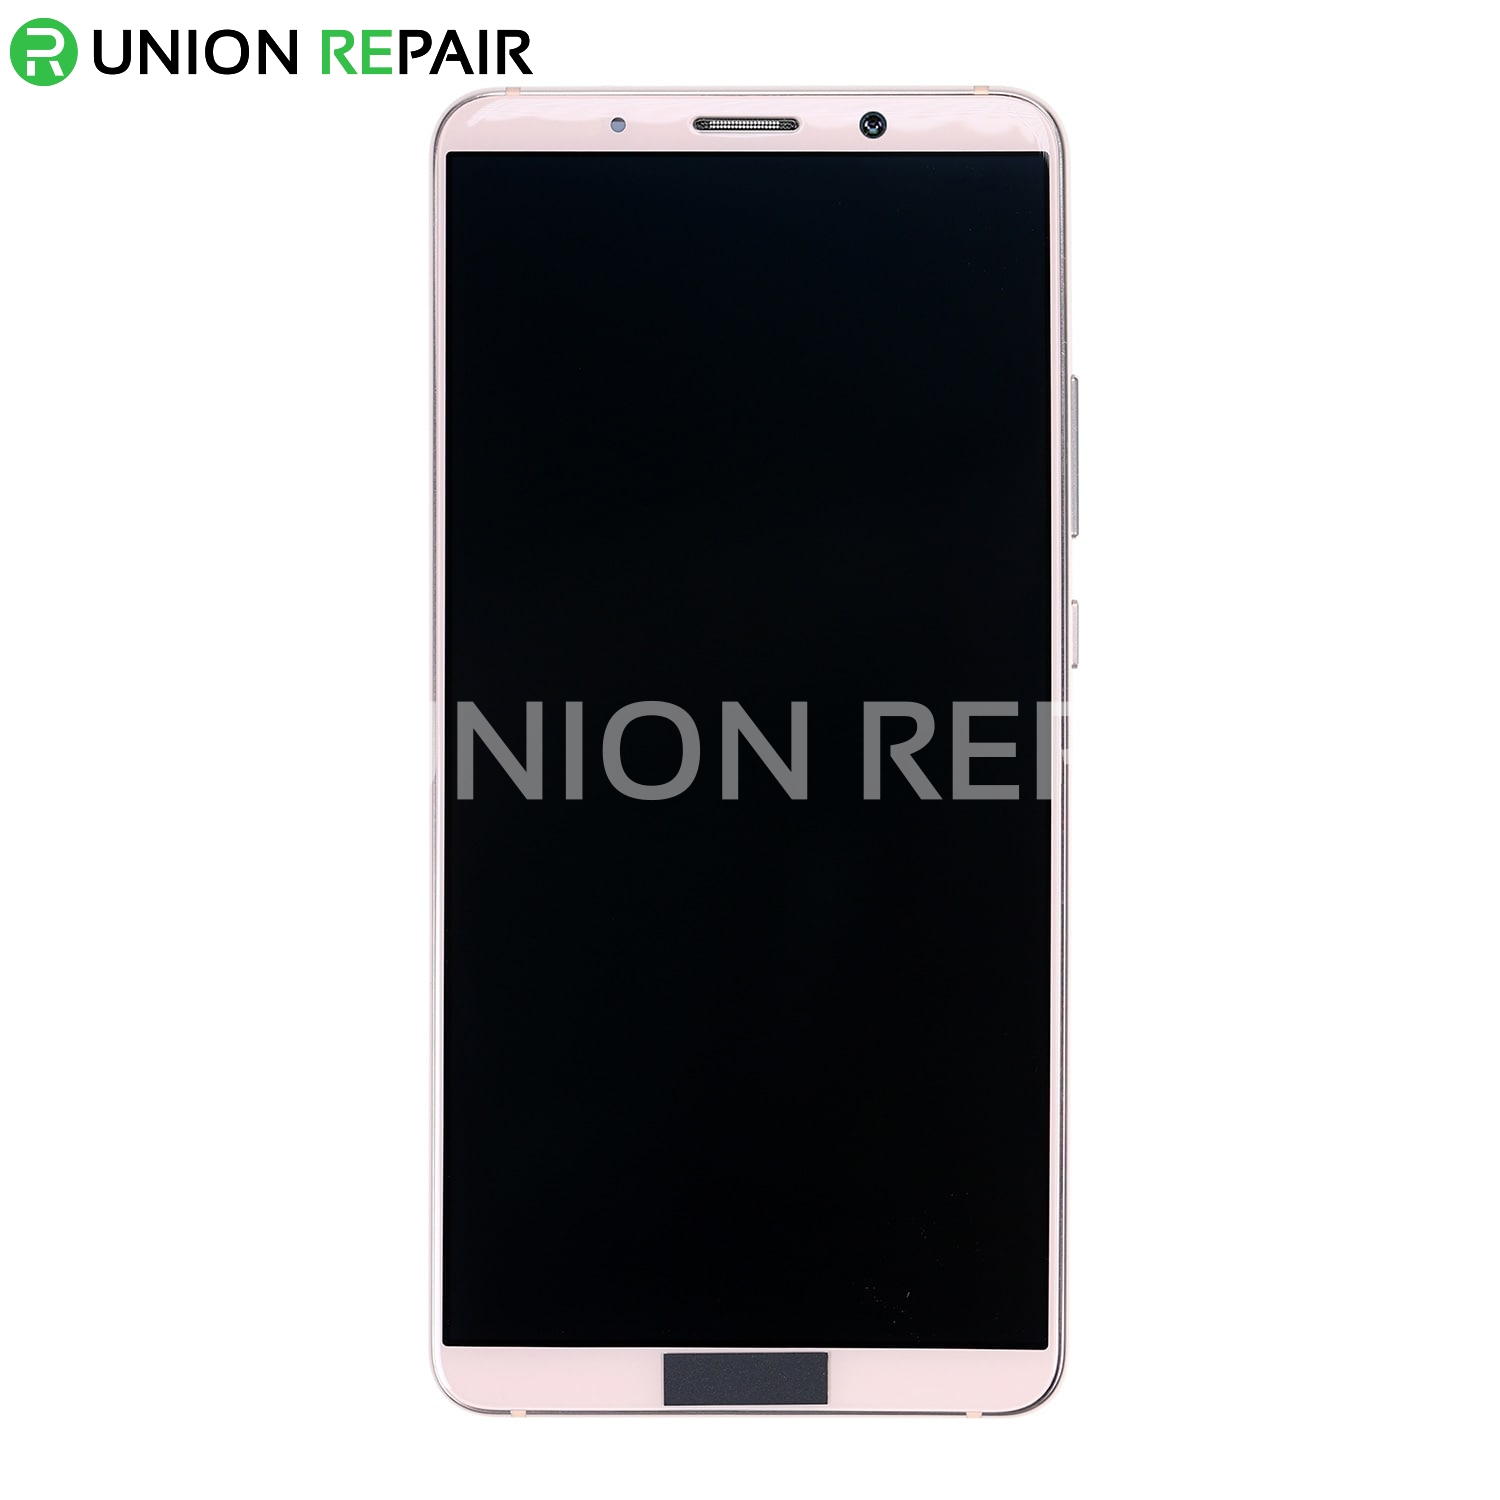 Replacement for Huawei Mate 10 Pro LCD Screen Digitizer Assembly with Frame - Pink Gold